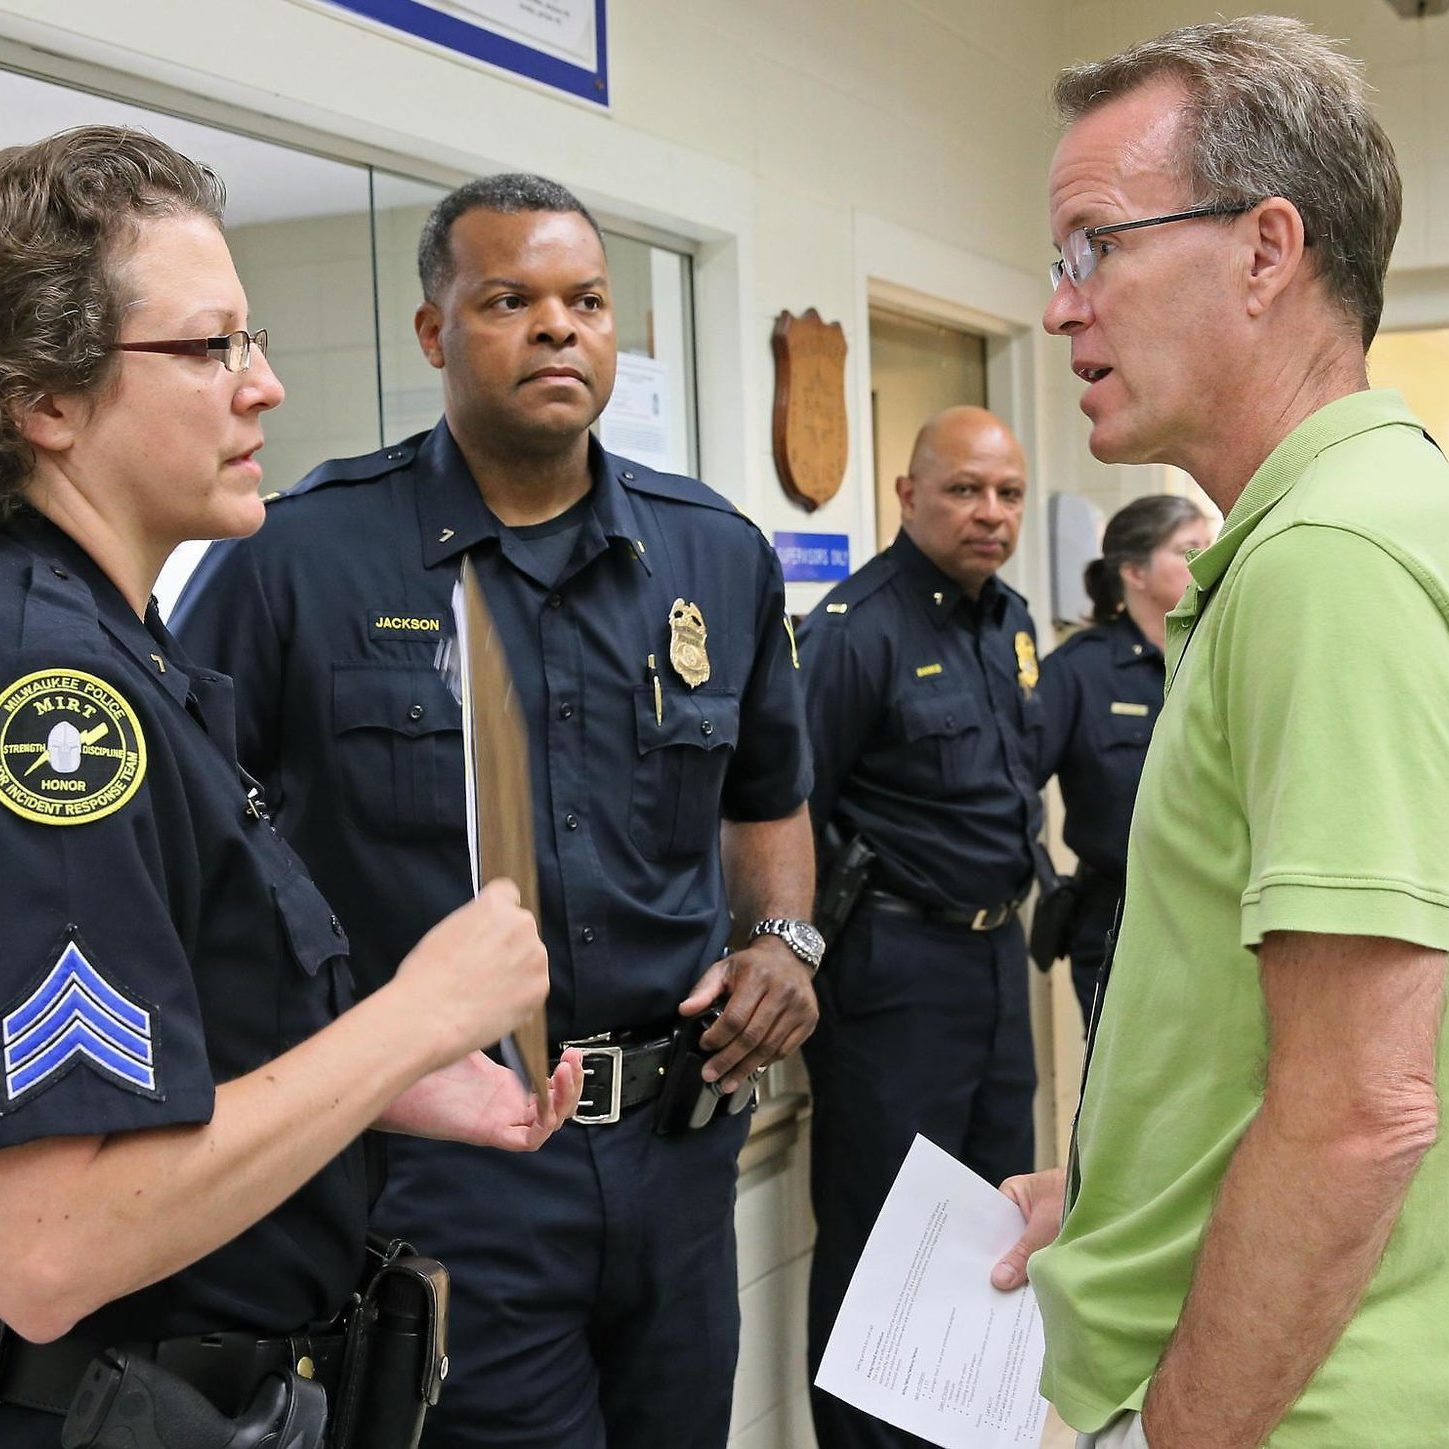 Mental Health Police Officer Meeting with Mental Health Workers during disaster